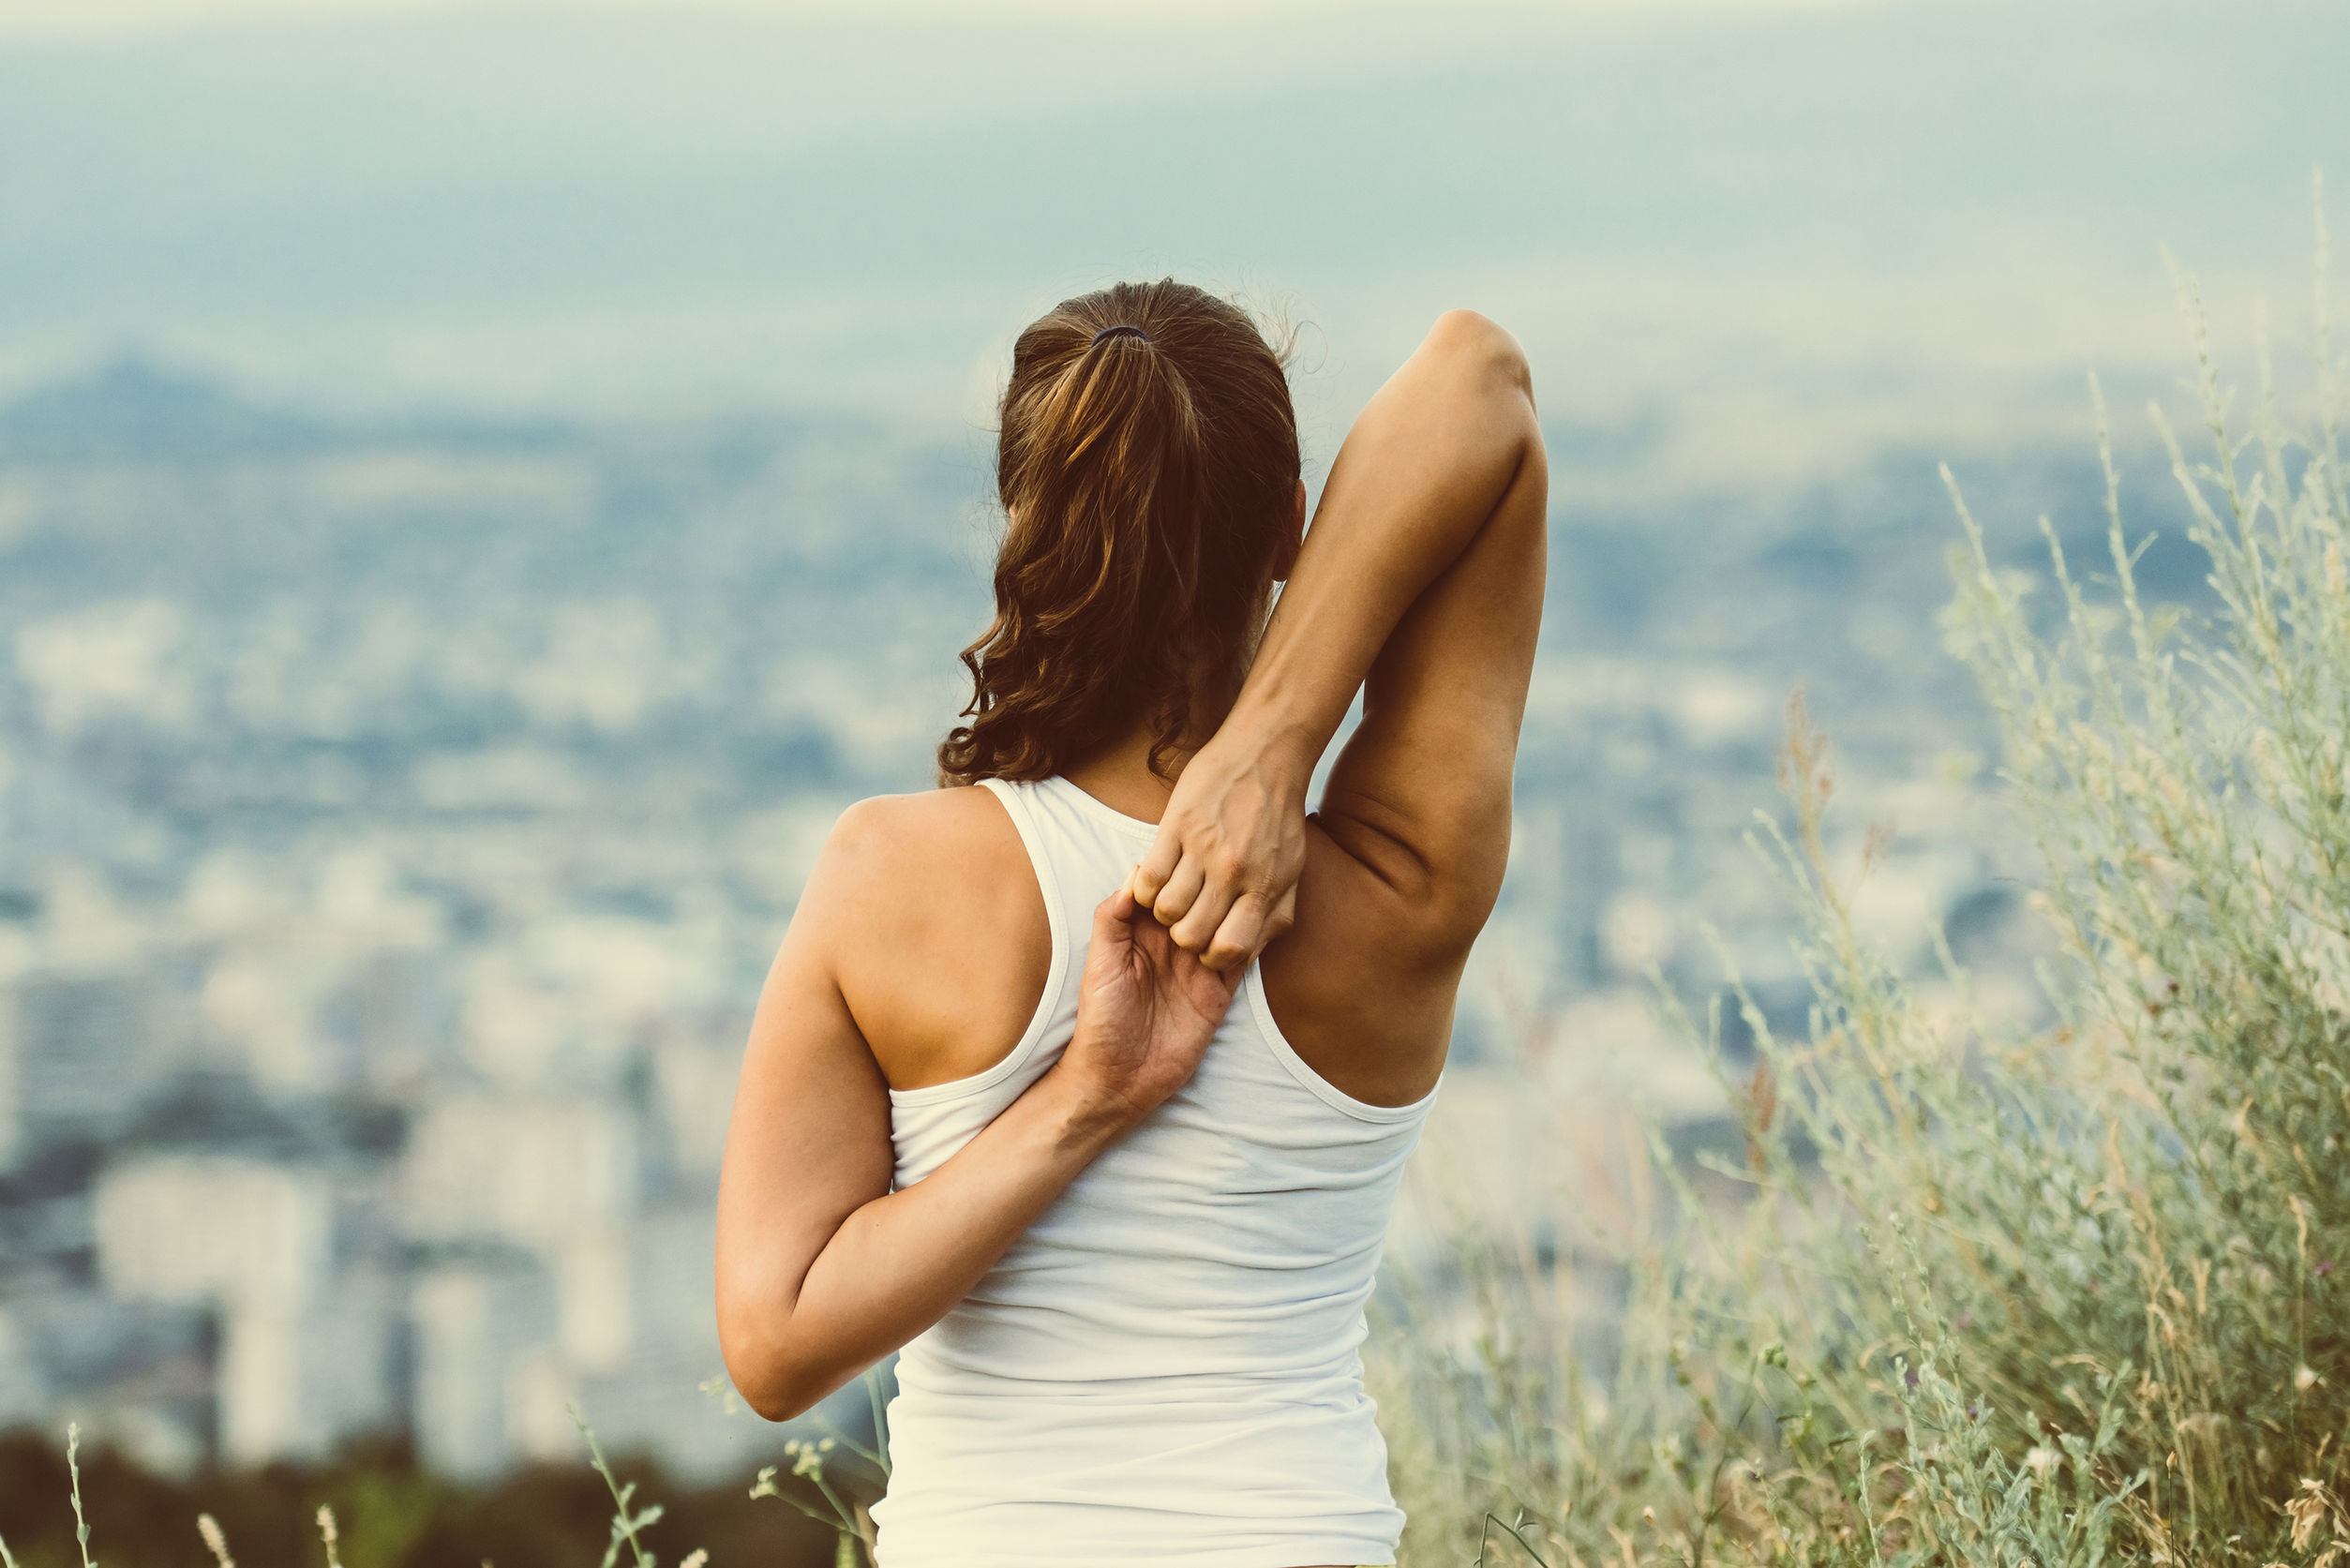 young woman stretching outside overlooking the city